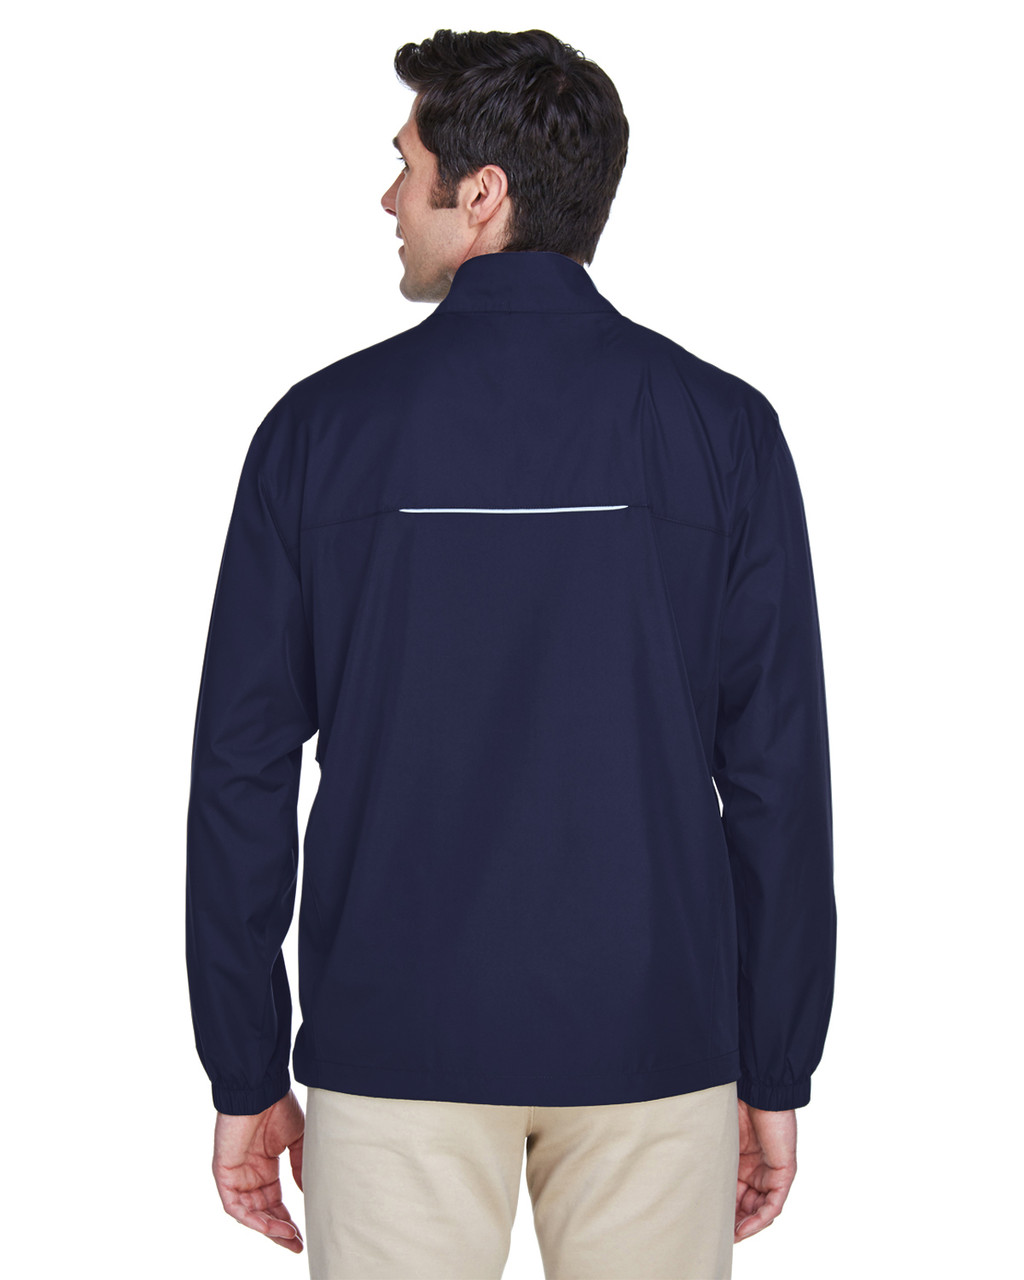 Classic Navy - Back, 88183 Ash City - Core 365 Motivate Unlined Lightweight Jacket | Blankclothing.ca